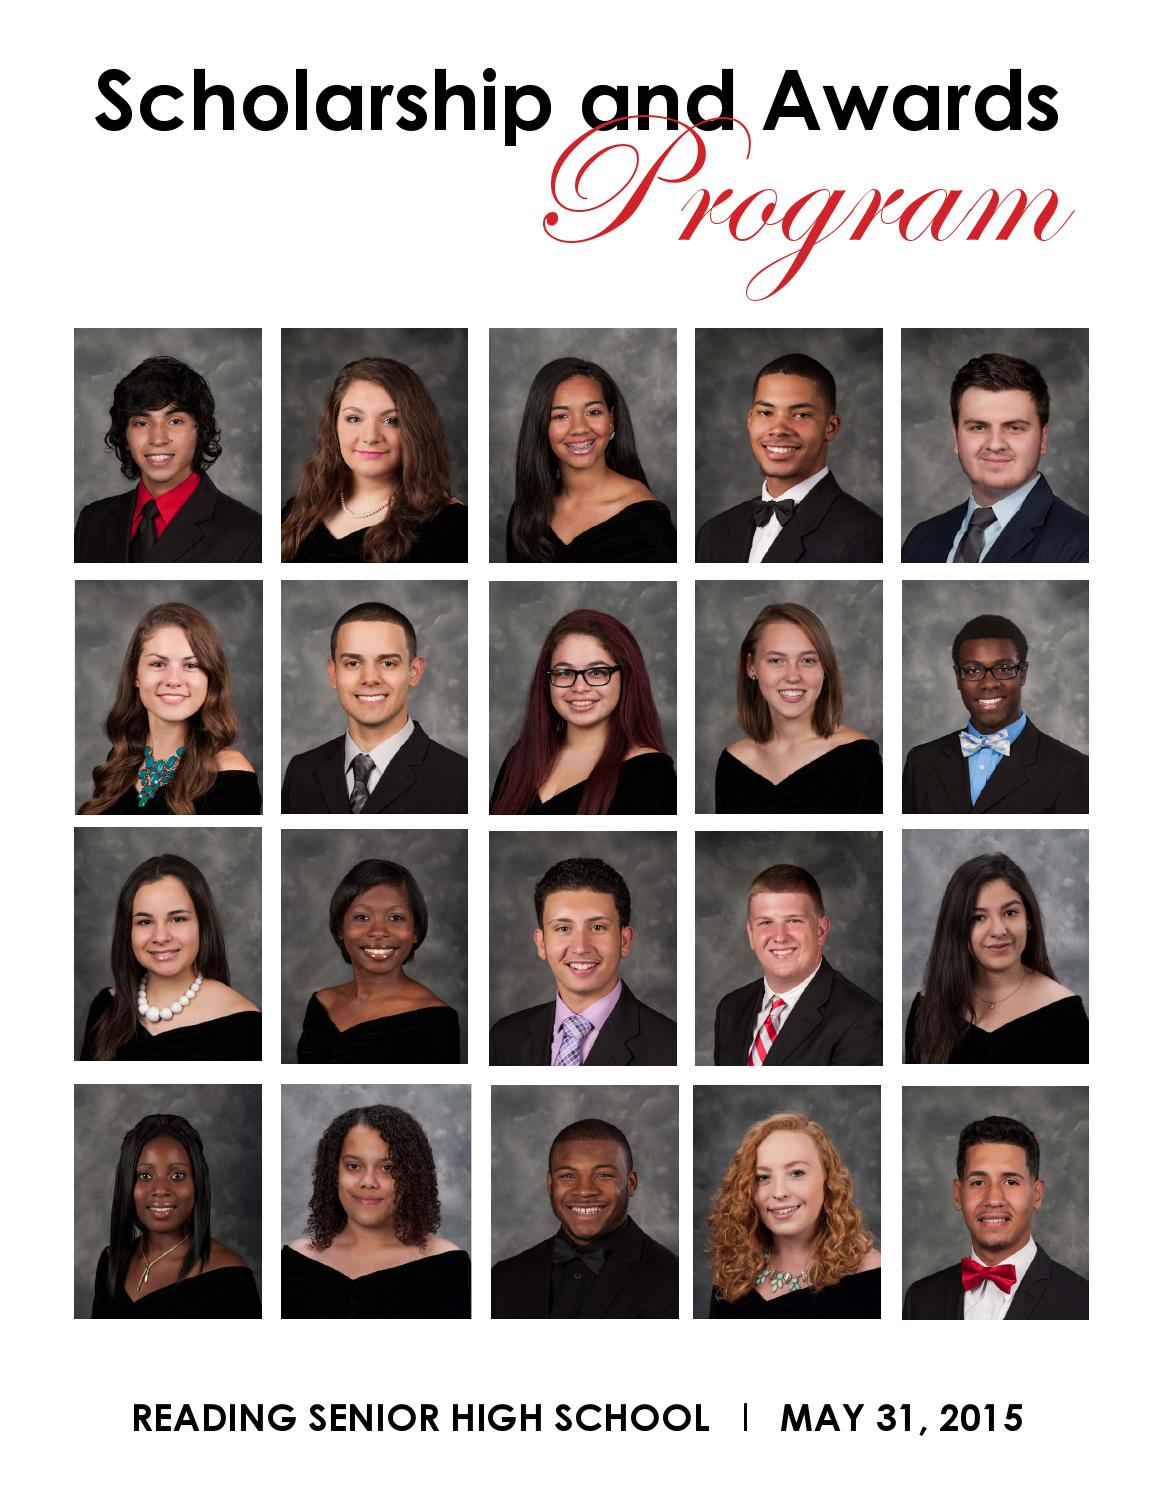 2015 rhs scholarship and awards program by reading school